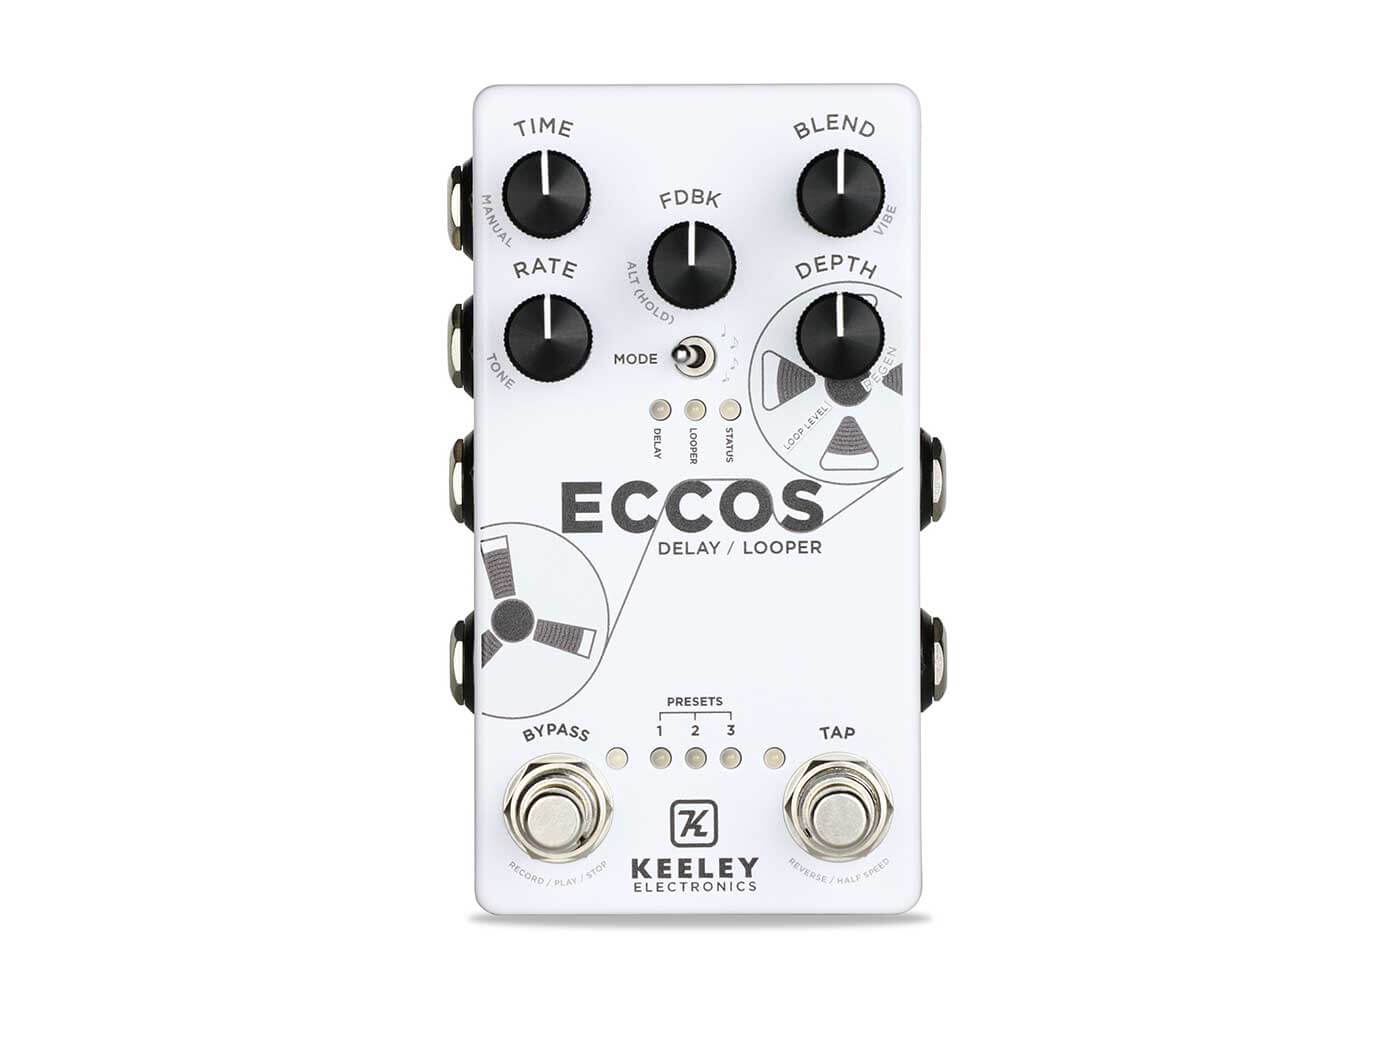 Keeley Electronics' Eccos